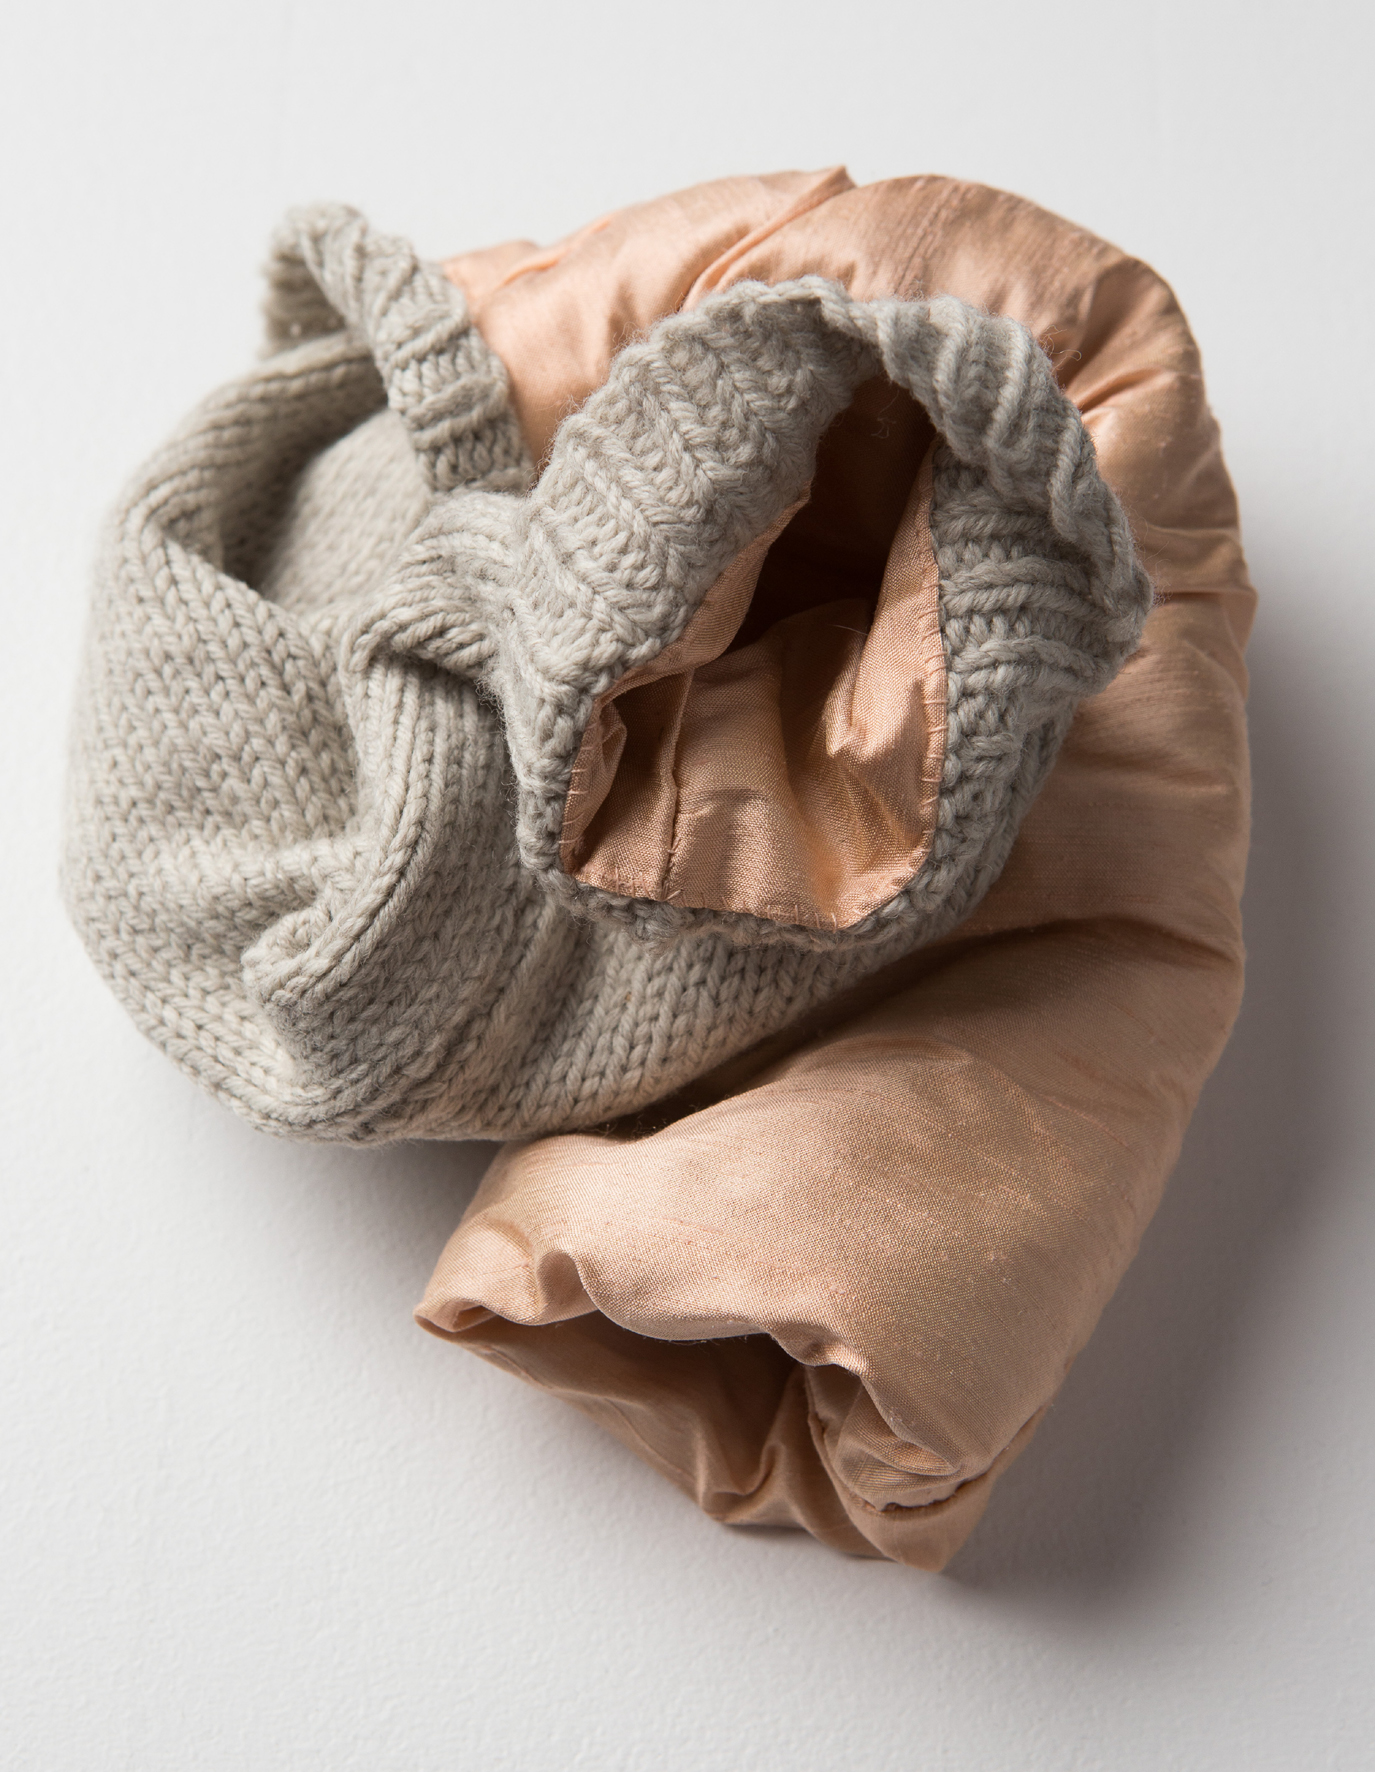 Robyn Finlay,  Untitled  (detail), 2012-13, teabags, 33.5 x 32 x 35 cm. Photograph courtesy the artist.